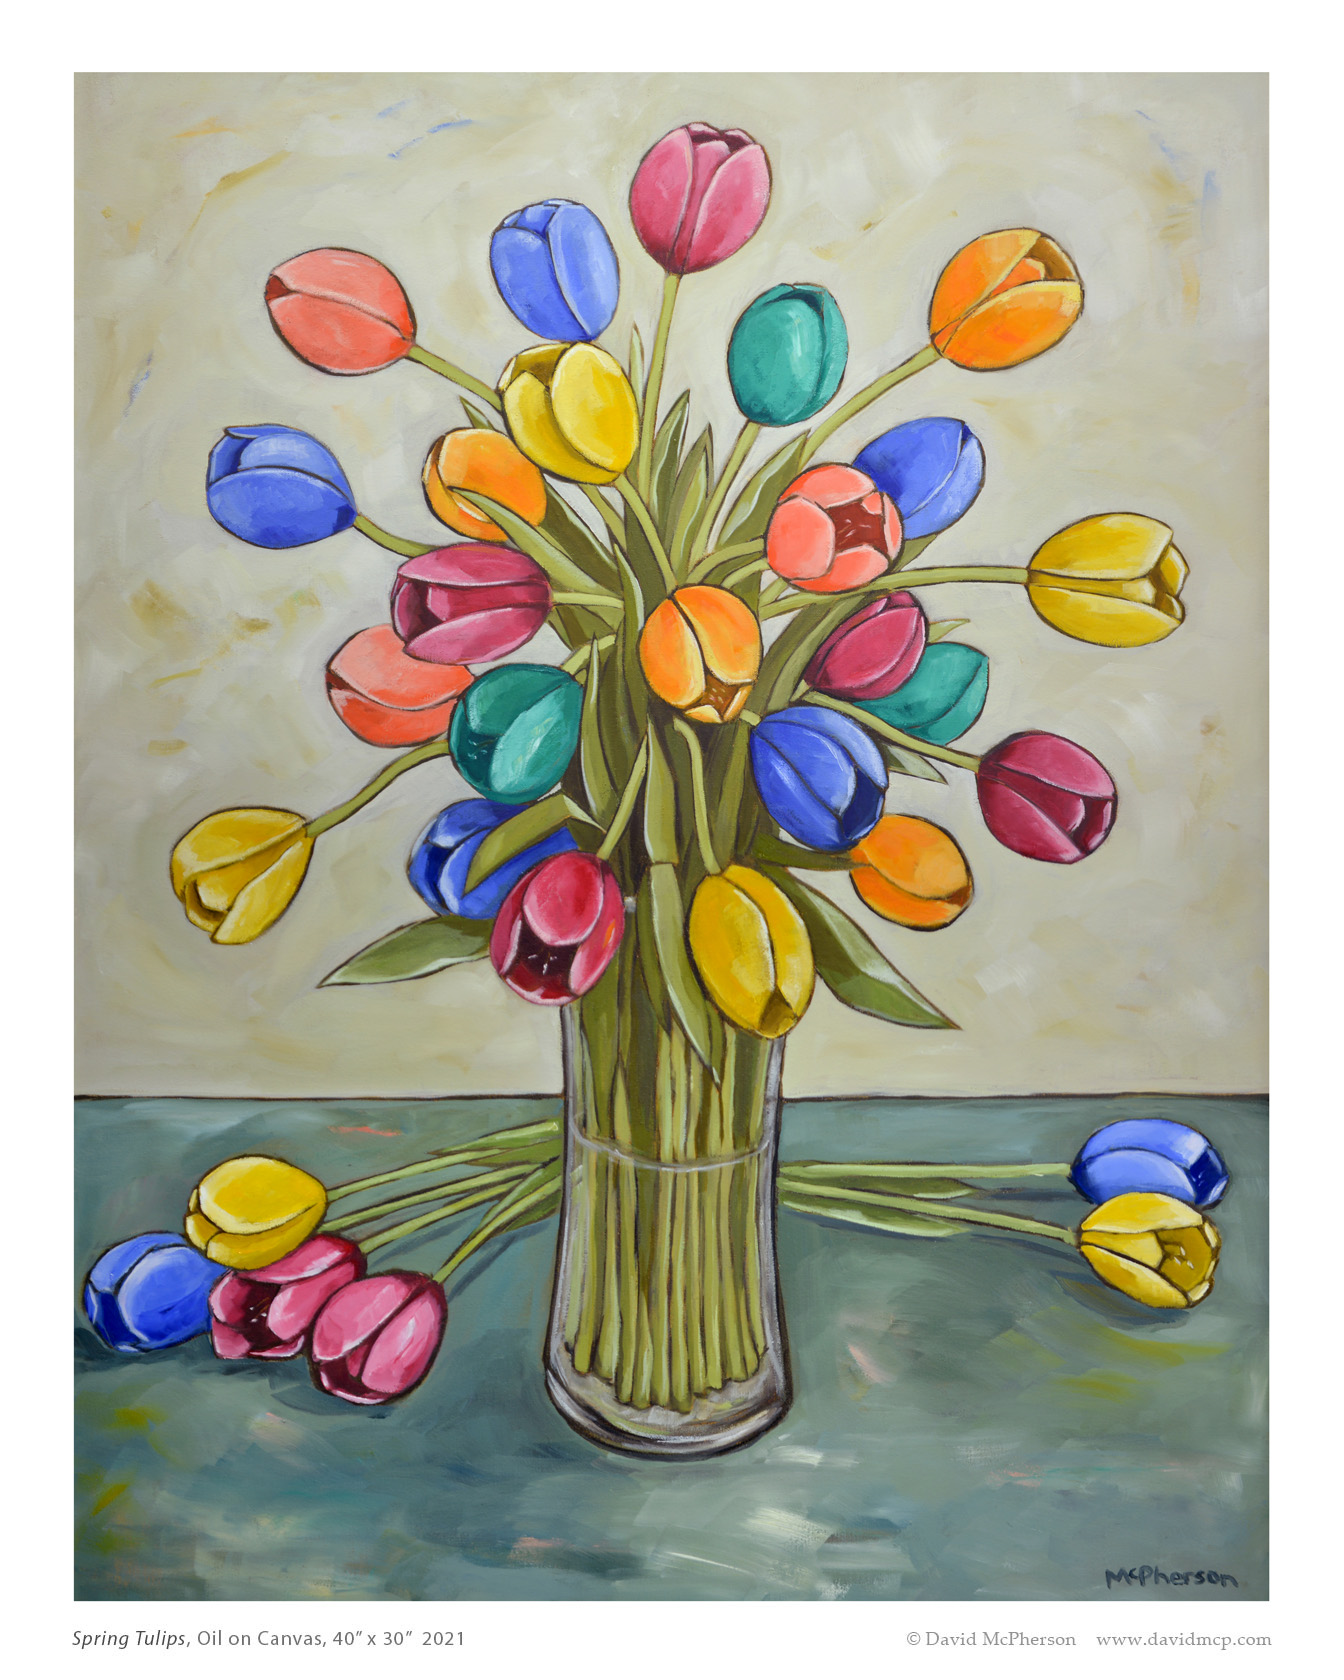 Spring Tulips, Oil on Canvas, 40 x 30, 2021